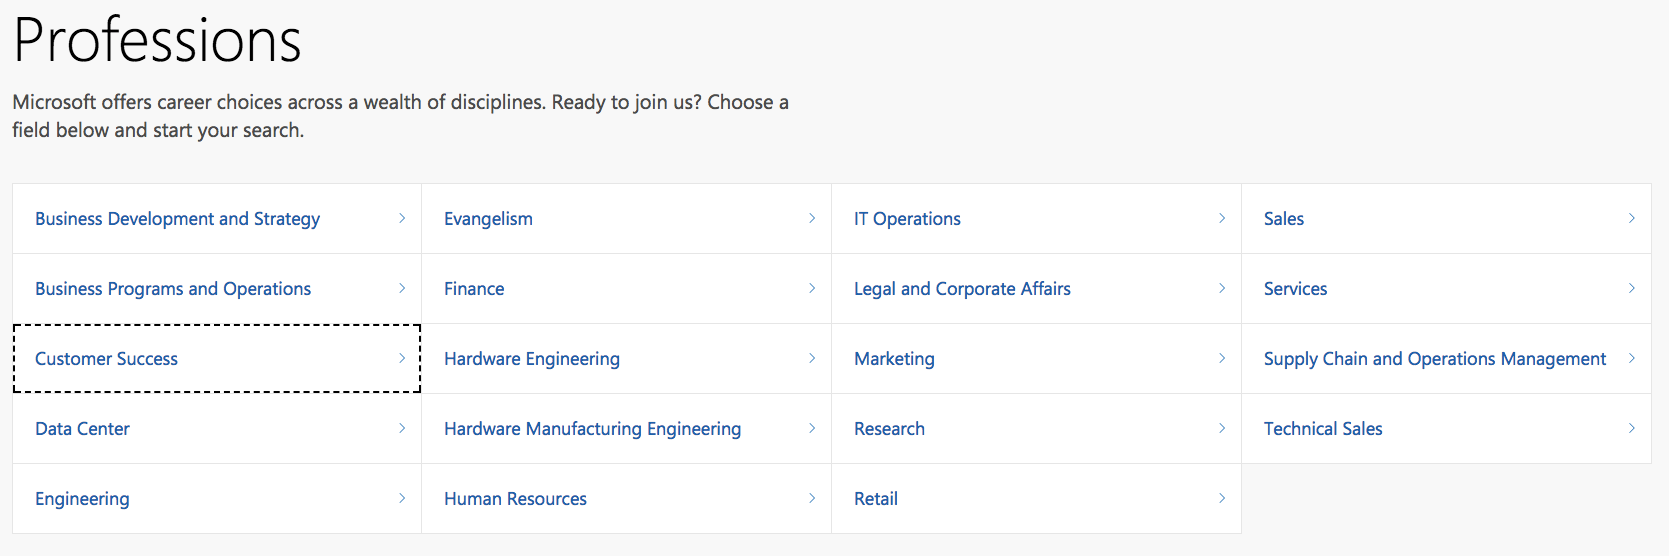 Profession information on Microsoft's career site with Phenom People